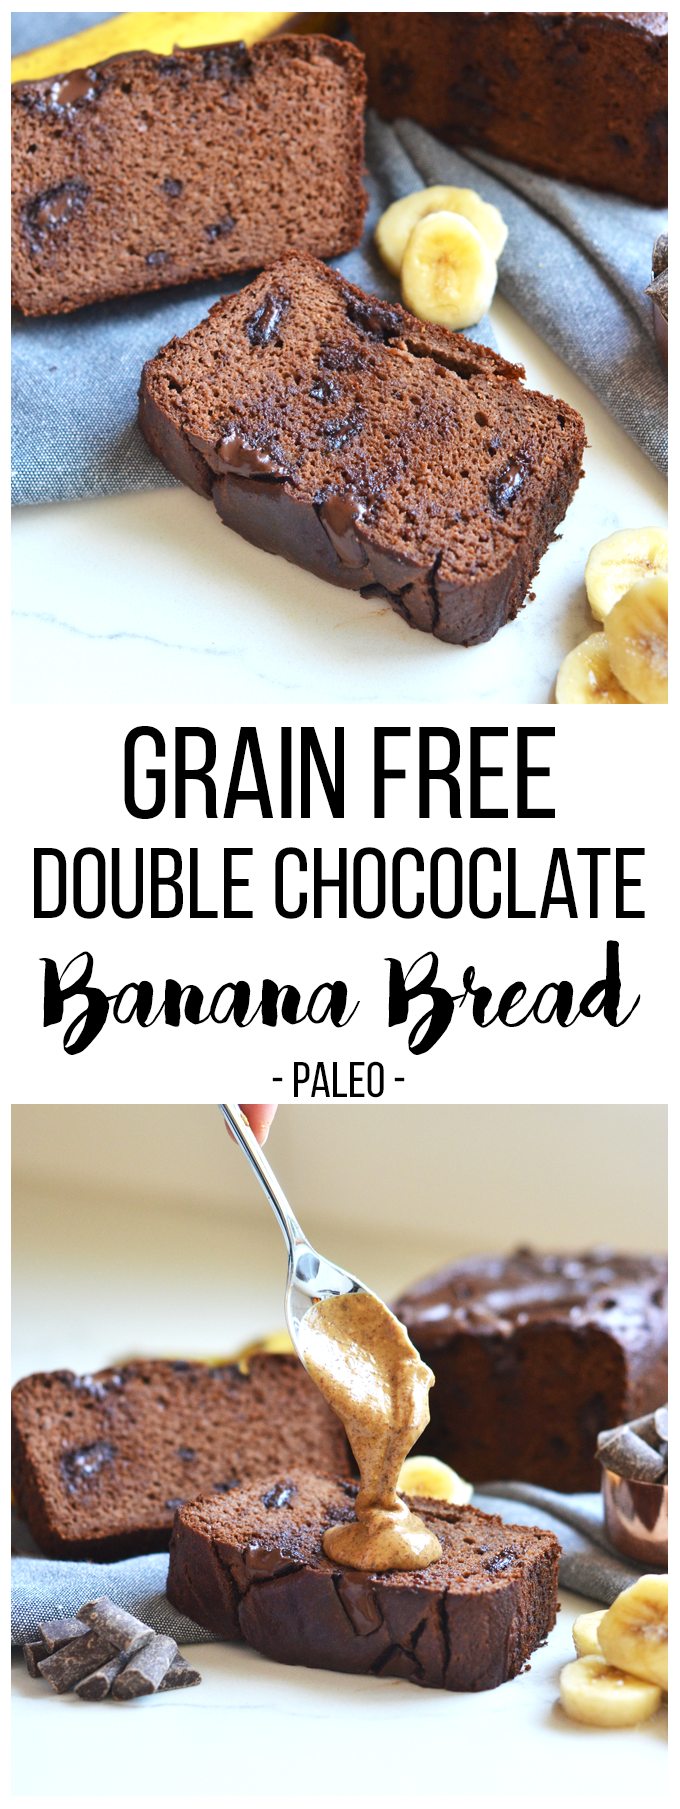 This Grain Free Double Chocolate Banana Bread is moist, chocolately and loved by everyone - paleo or not!!